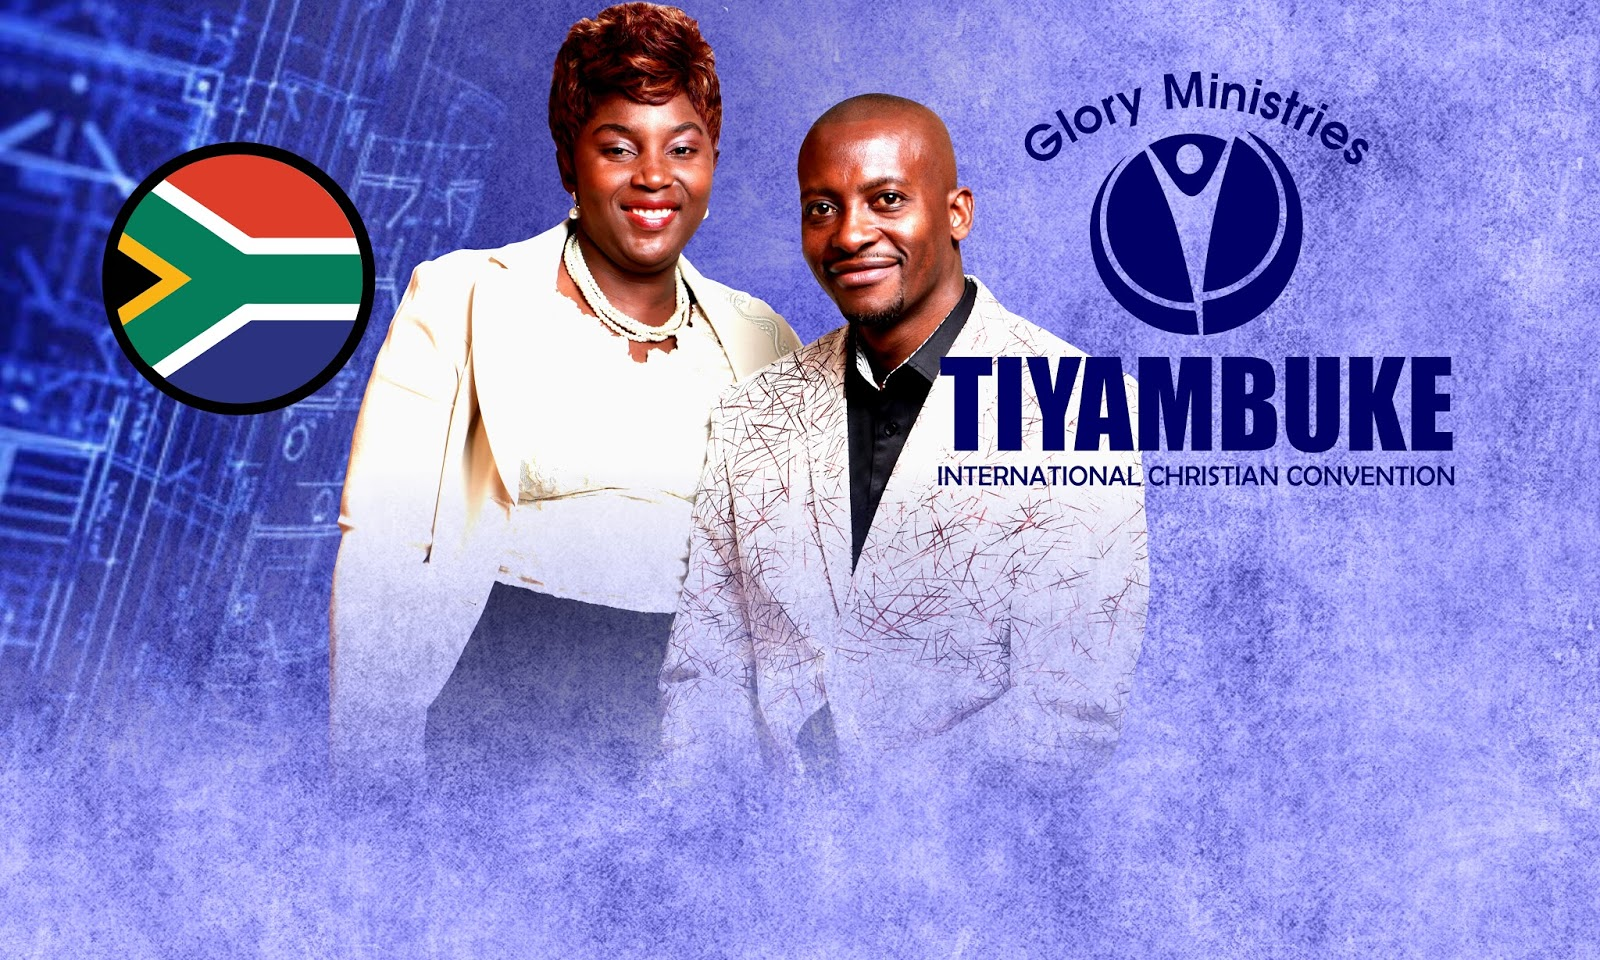 Apostle Pride Sibiya and Glory Ministries To Host Mzansi Tiyambuke 2018 In Durban This March